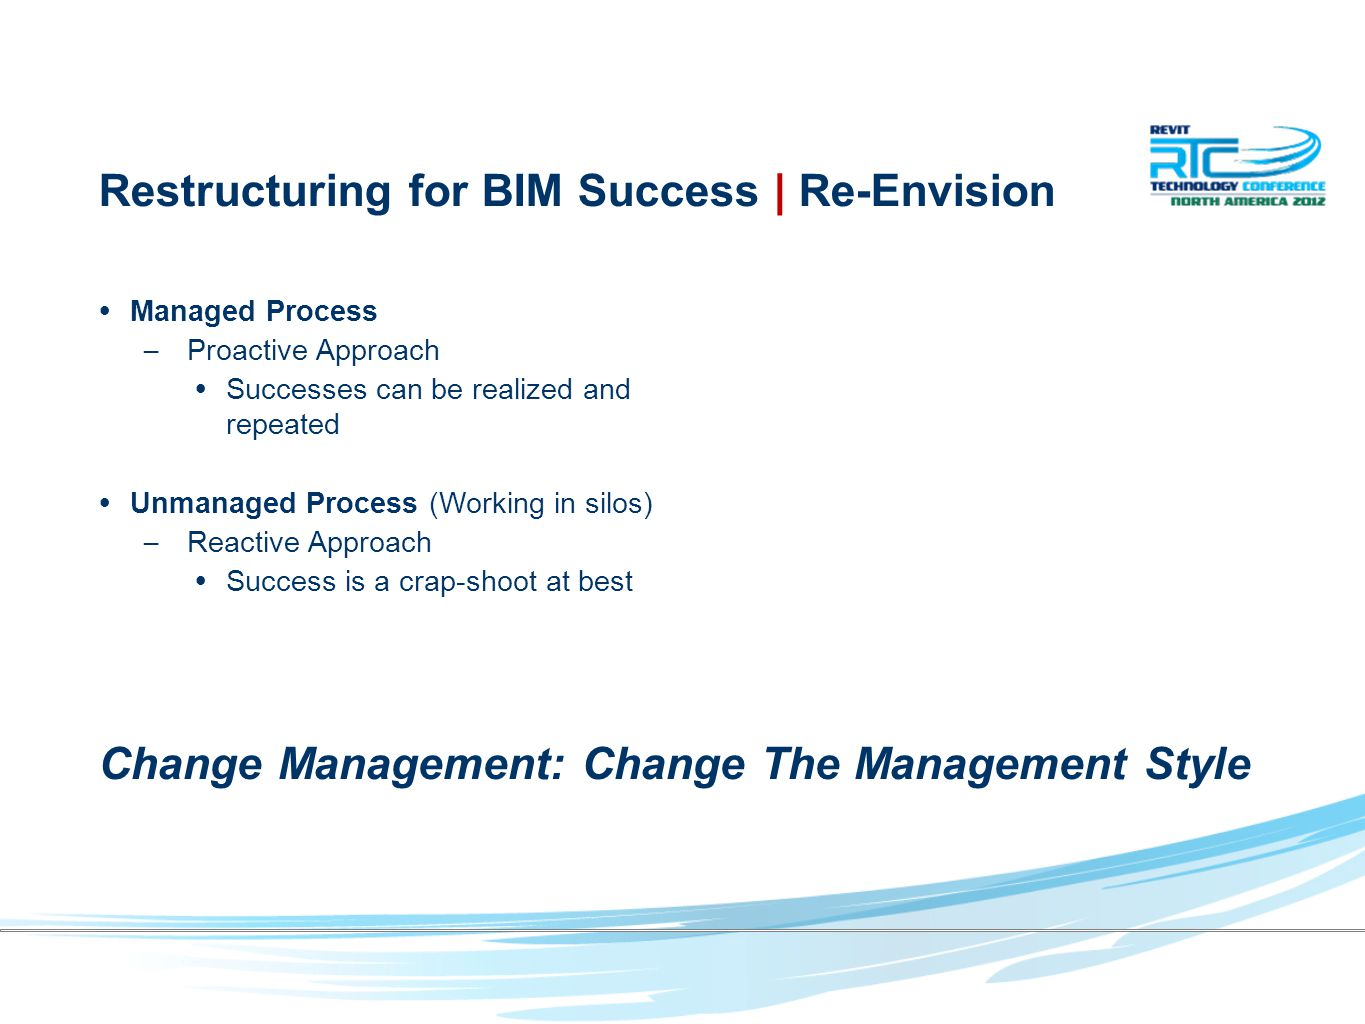 Managed Process – Proactive Approach Successes can be realized and repeated Unmanaged Process (Working in silos) – Reactive Approach Success is a crap-shoot at best Restructuring for BIM Success | Re-Envision Change Management: Change The Management Style